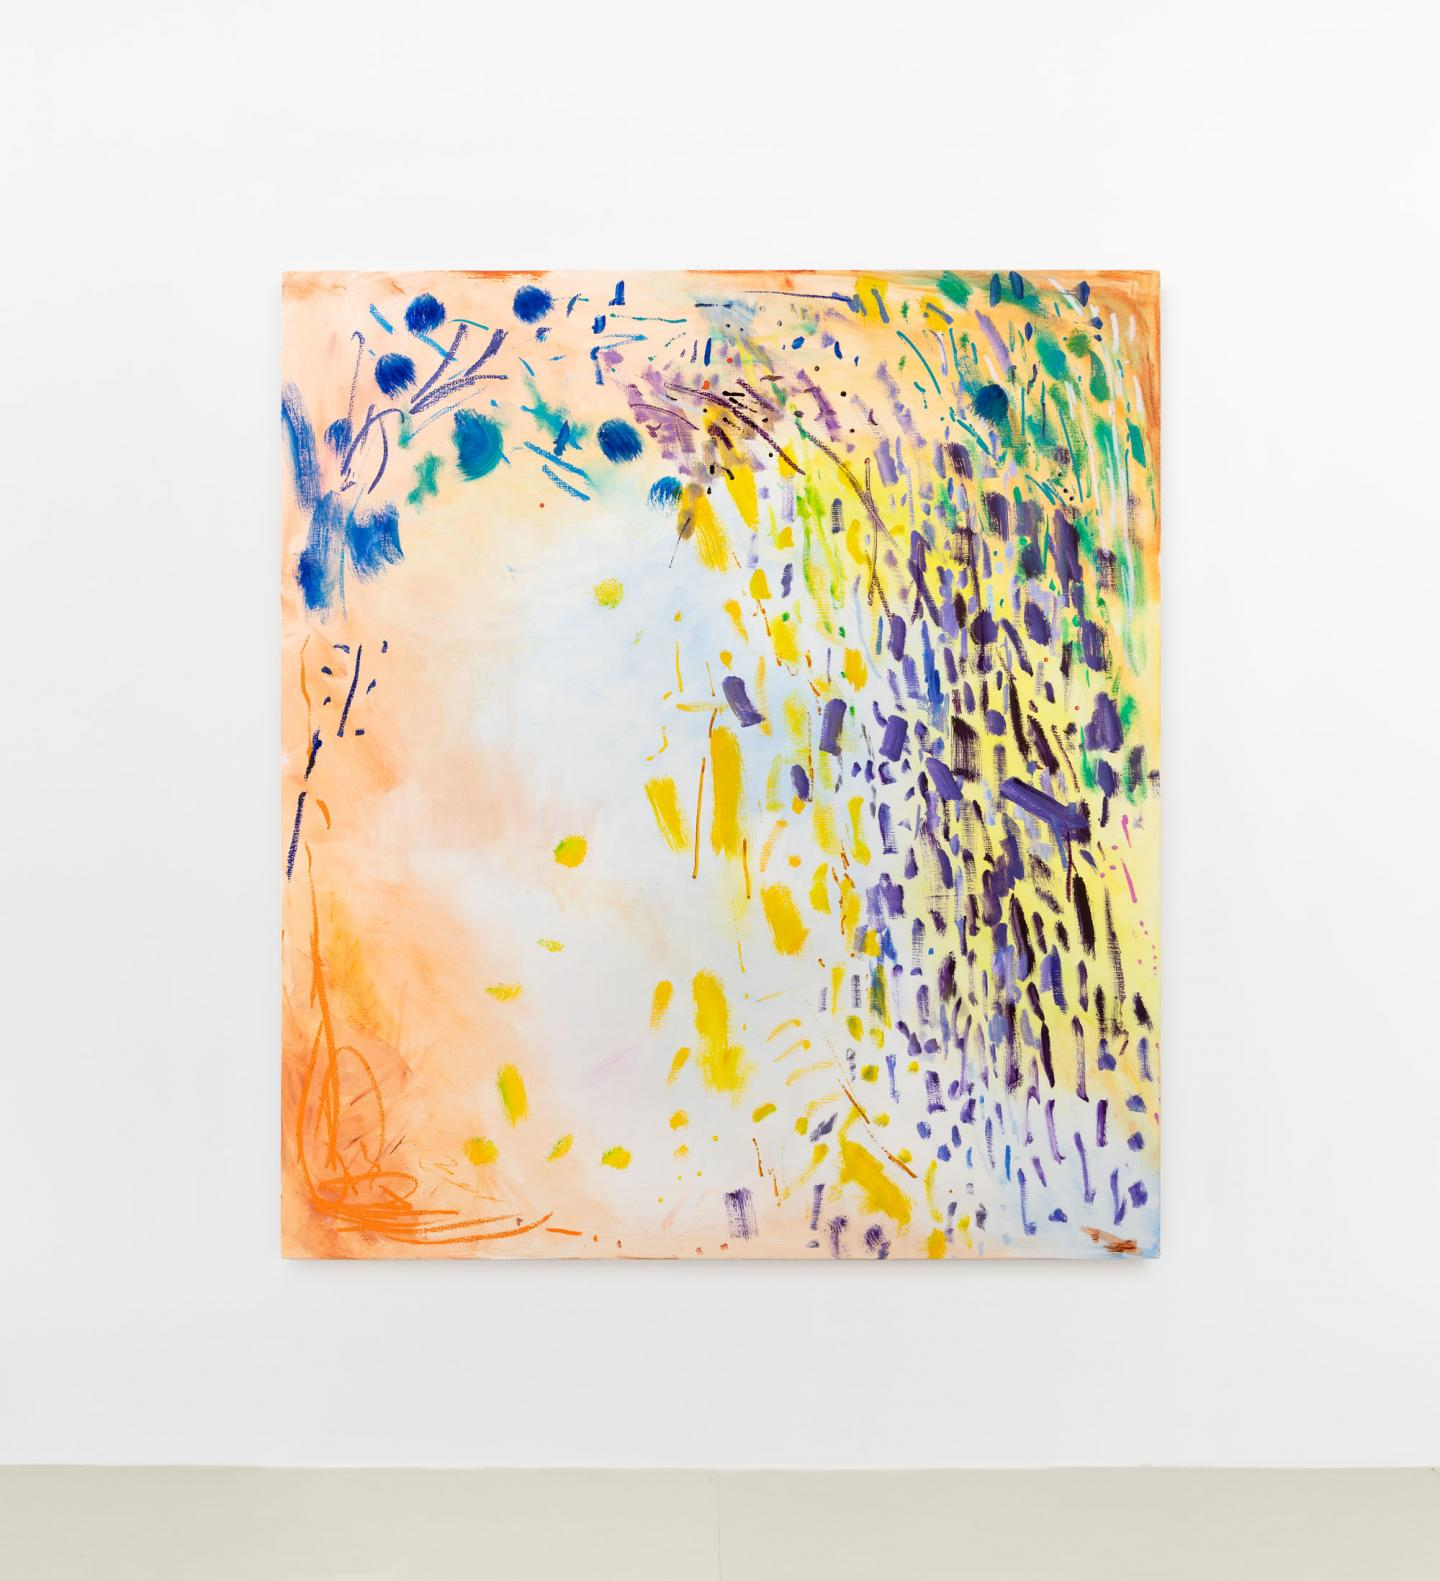 Emma McIntyre, If there is light that has weight, 2021